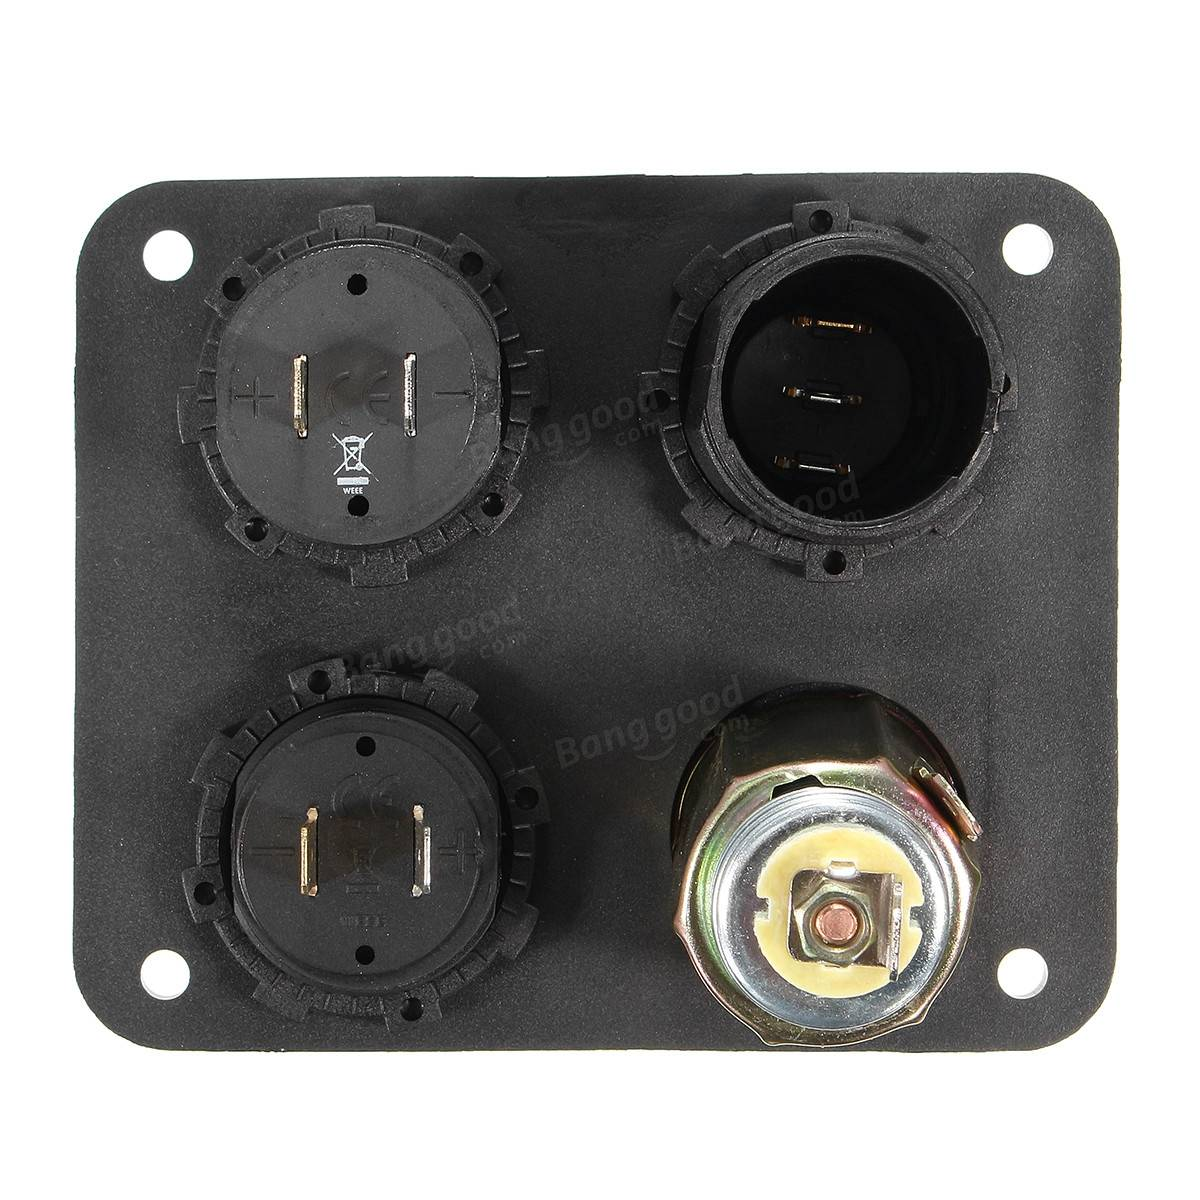 fb825a02 6711 4959 87d8 af0d23700f75 4 hole panel switch marine boat auto rv 12v power socket volt  at aneh.co